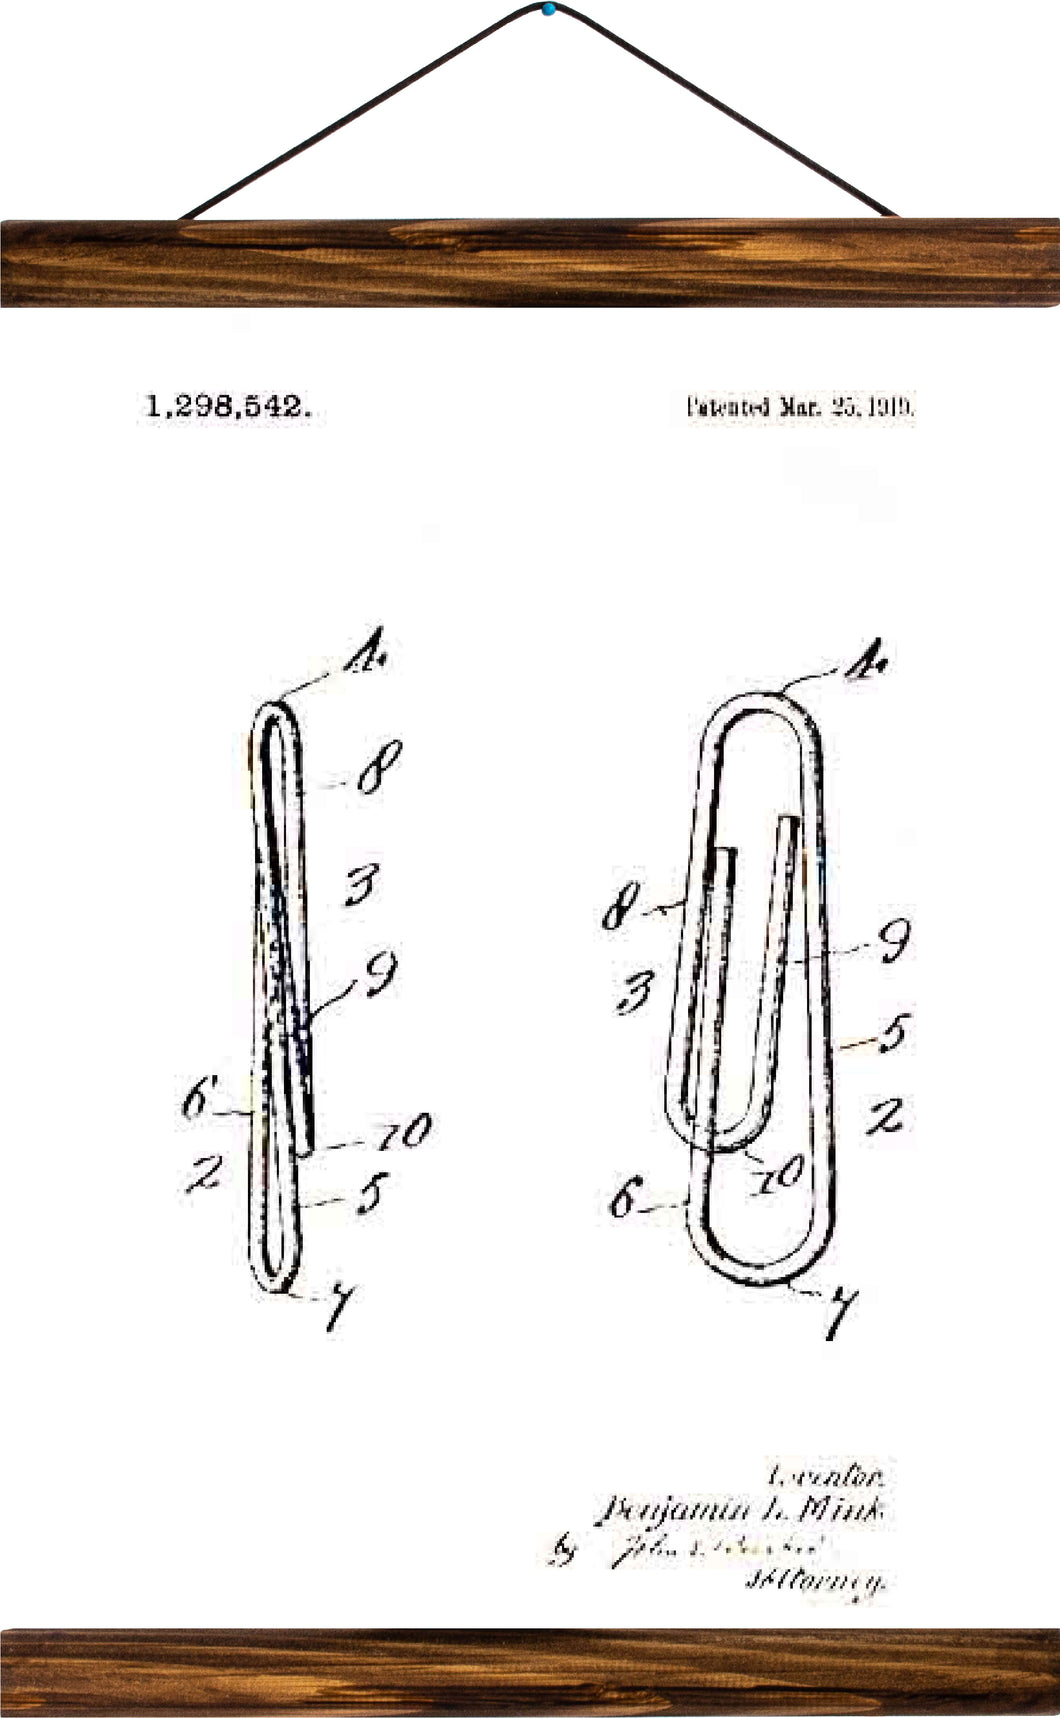 Paper clip patent, reprint on linen